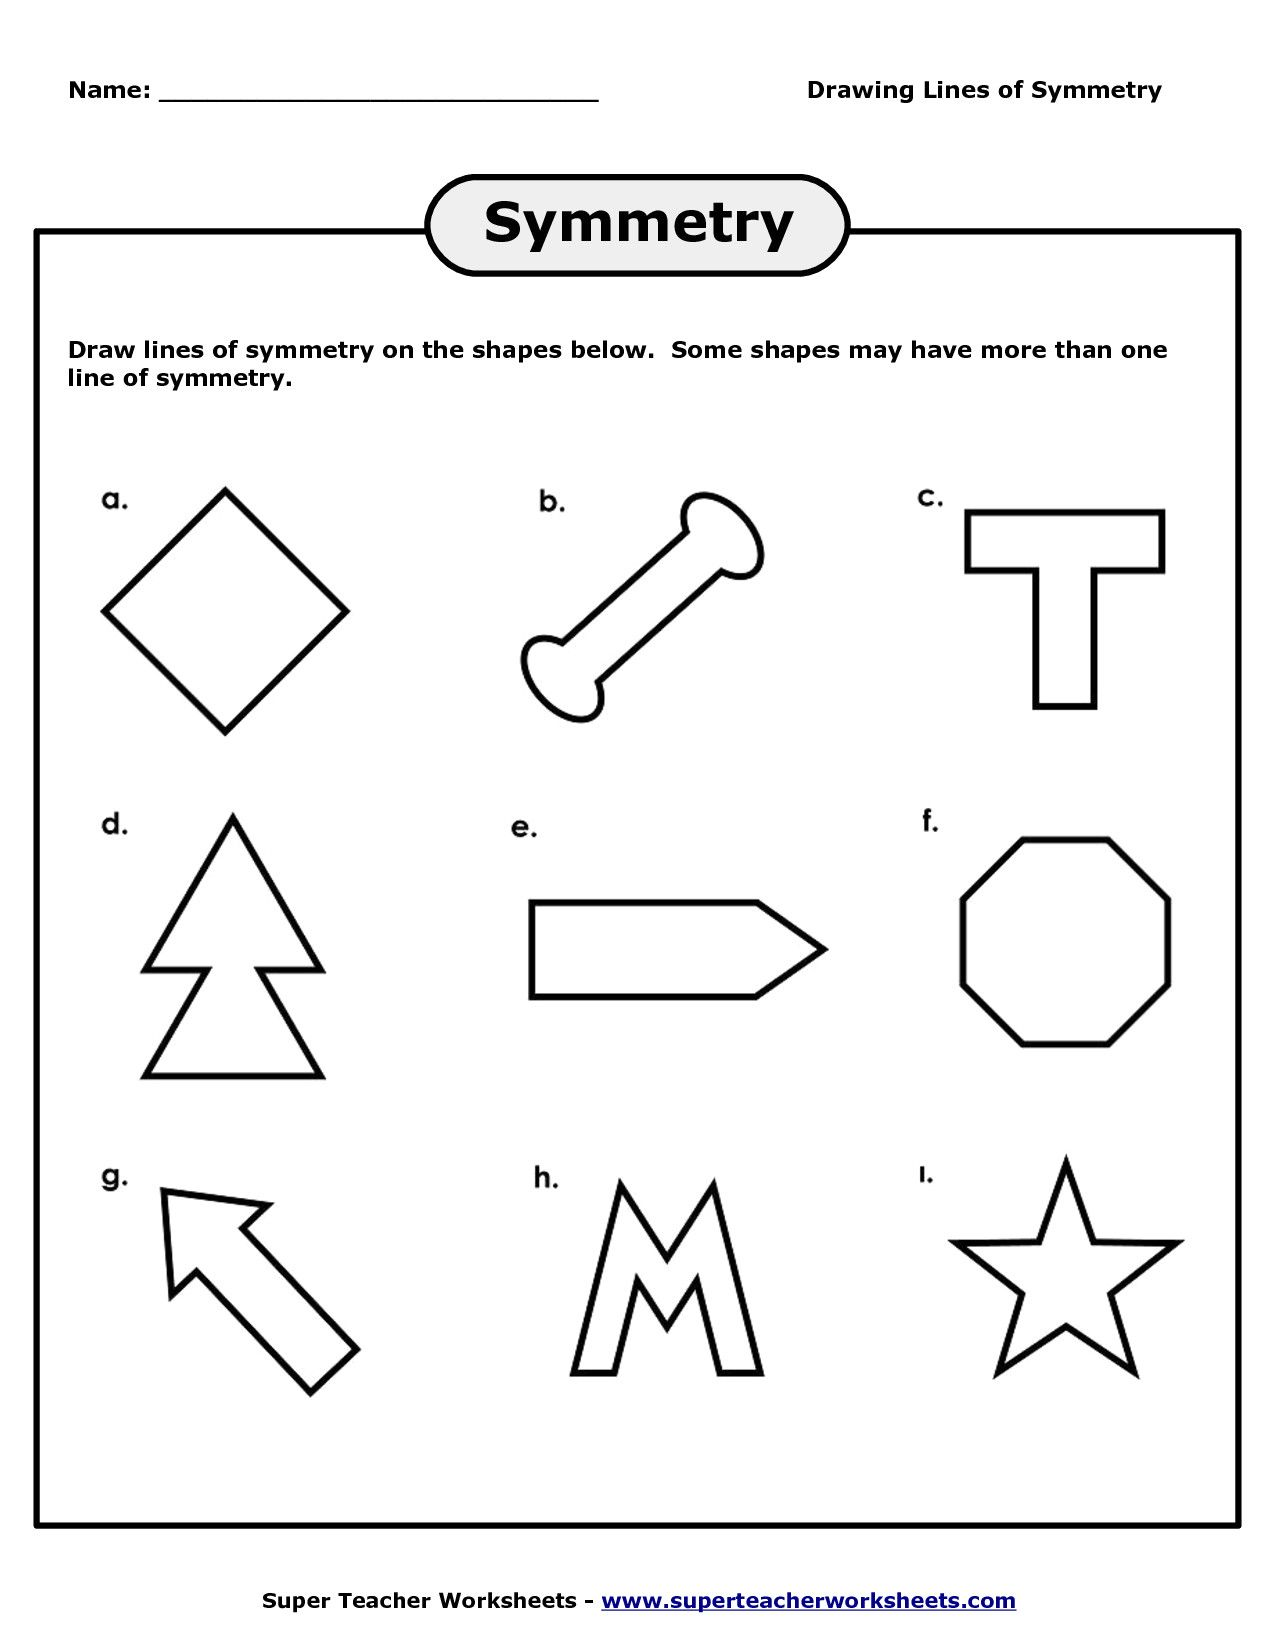 Drawing Lines Of Symmetry Worksheets 4 With Worksheet